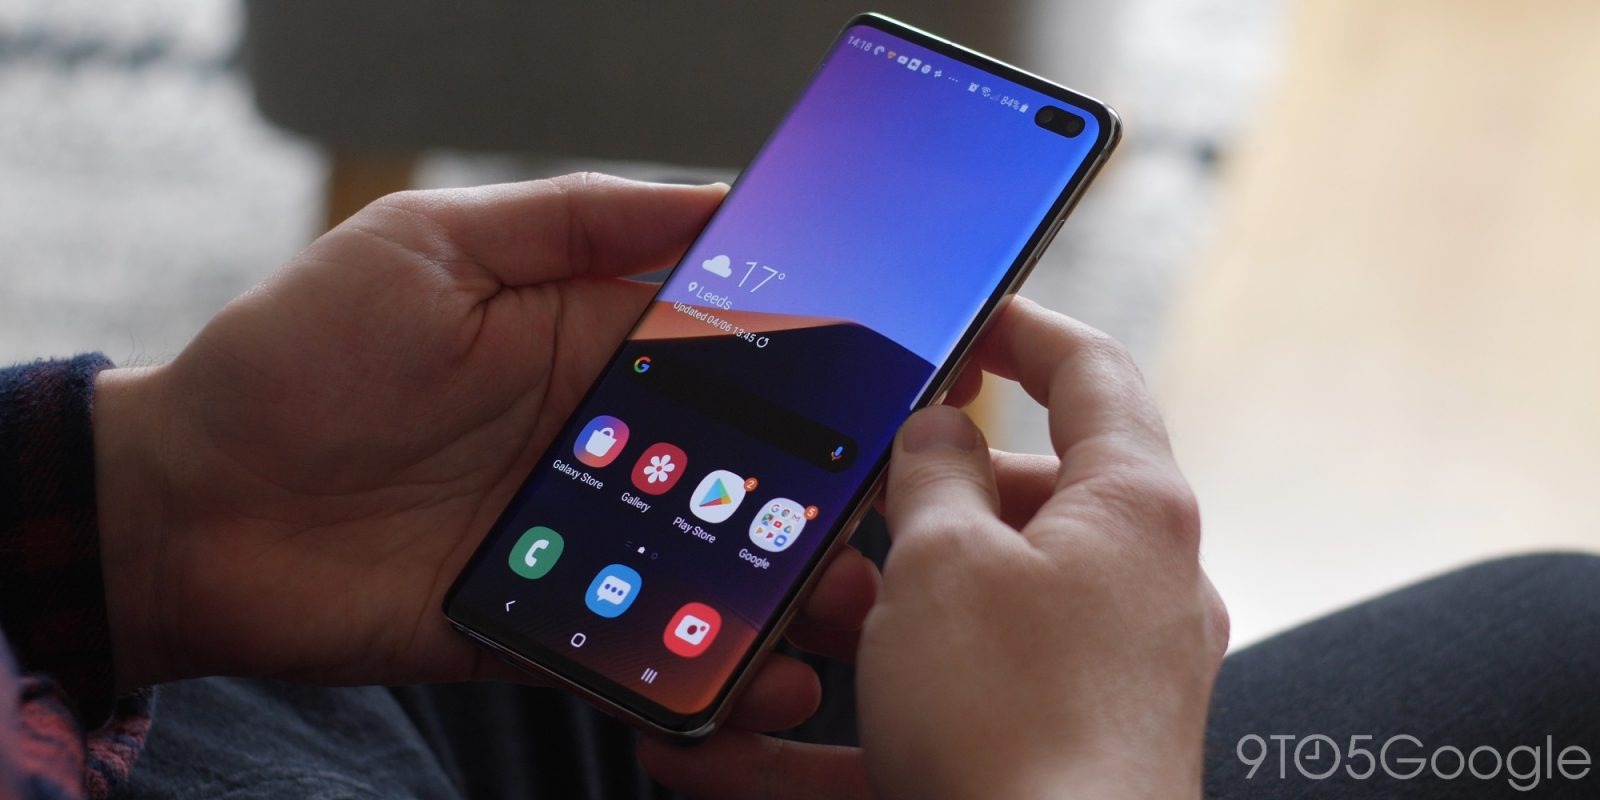 Slash $300 off Samsung's Galaxy S10+, now matching its Prime Day price at $700